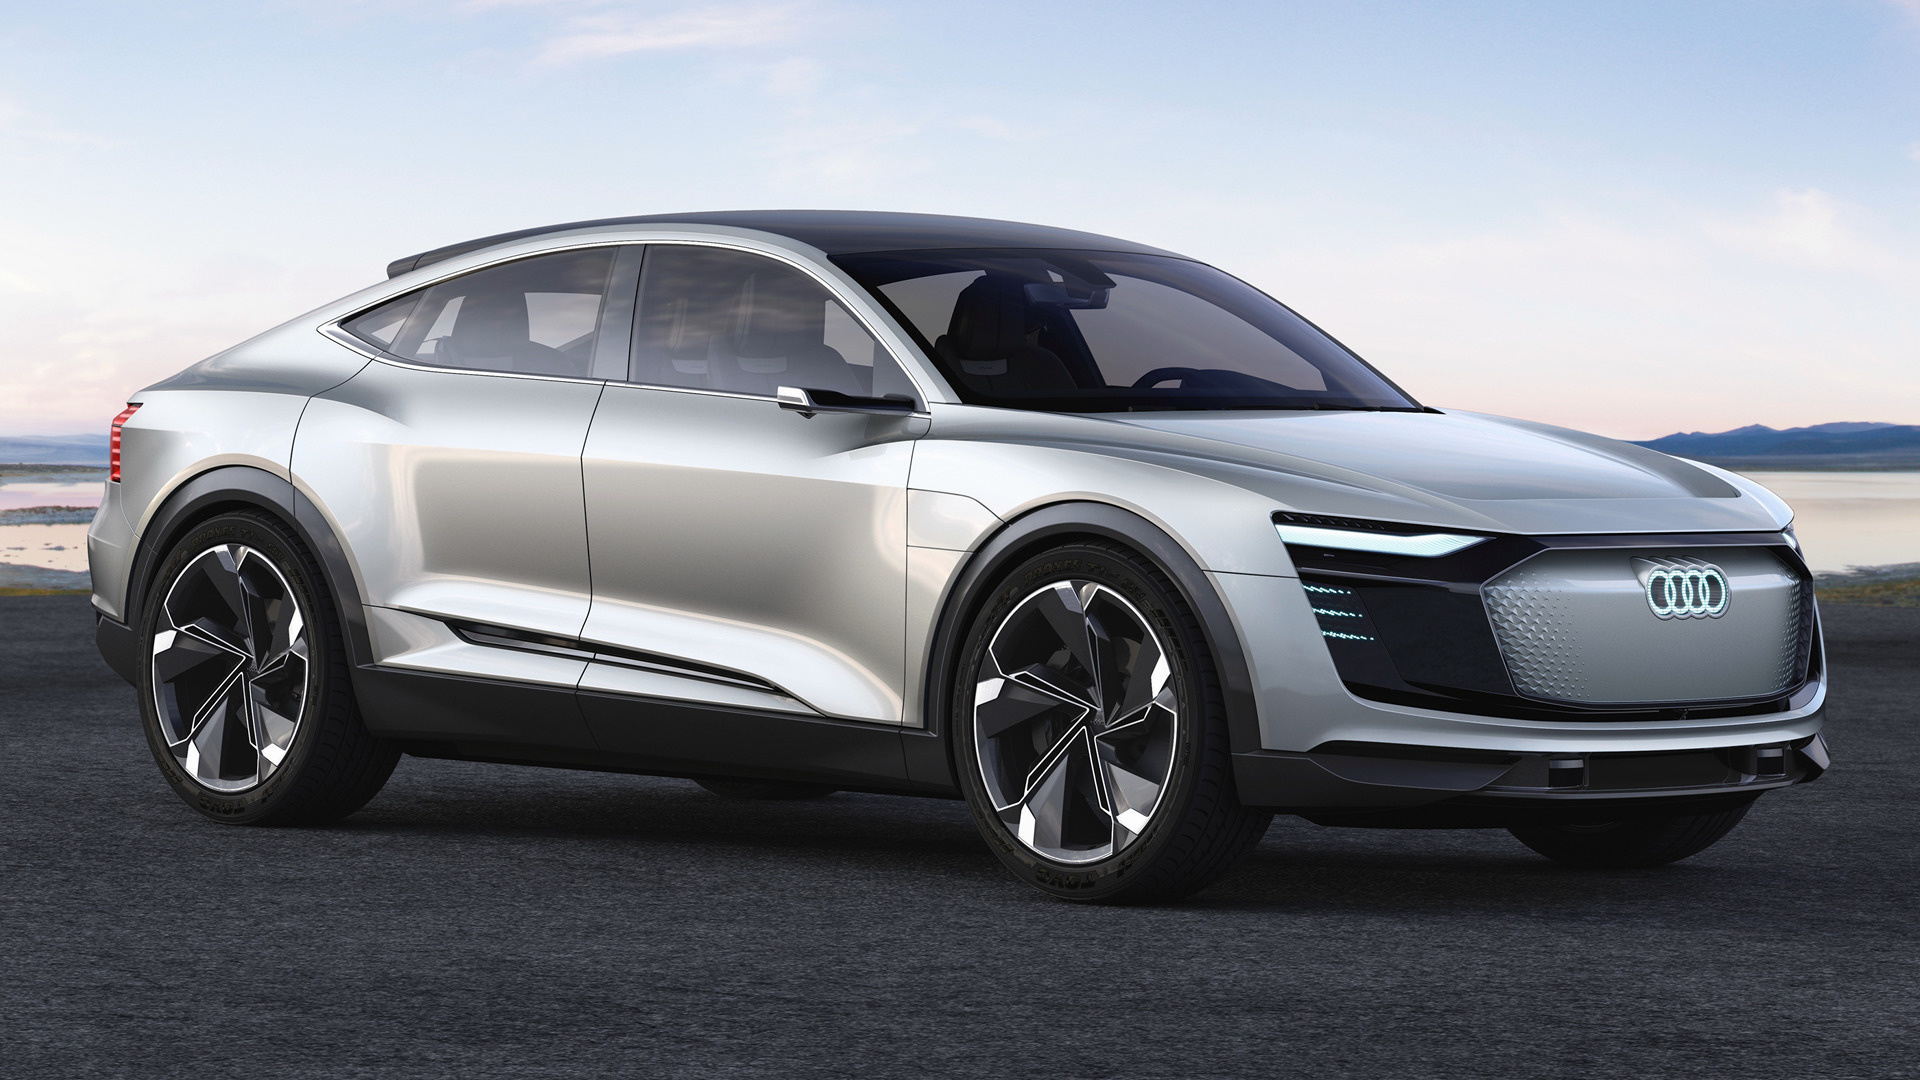 Audi e-tron Sportback concept (2017) Wallpapers and HD Images - Car ...